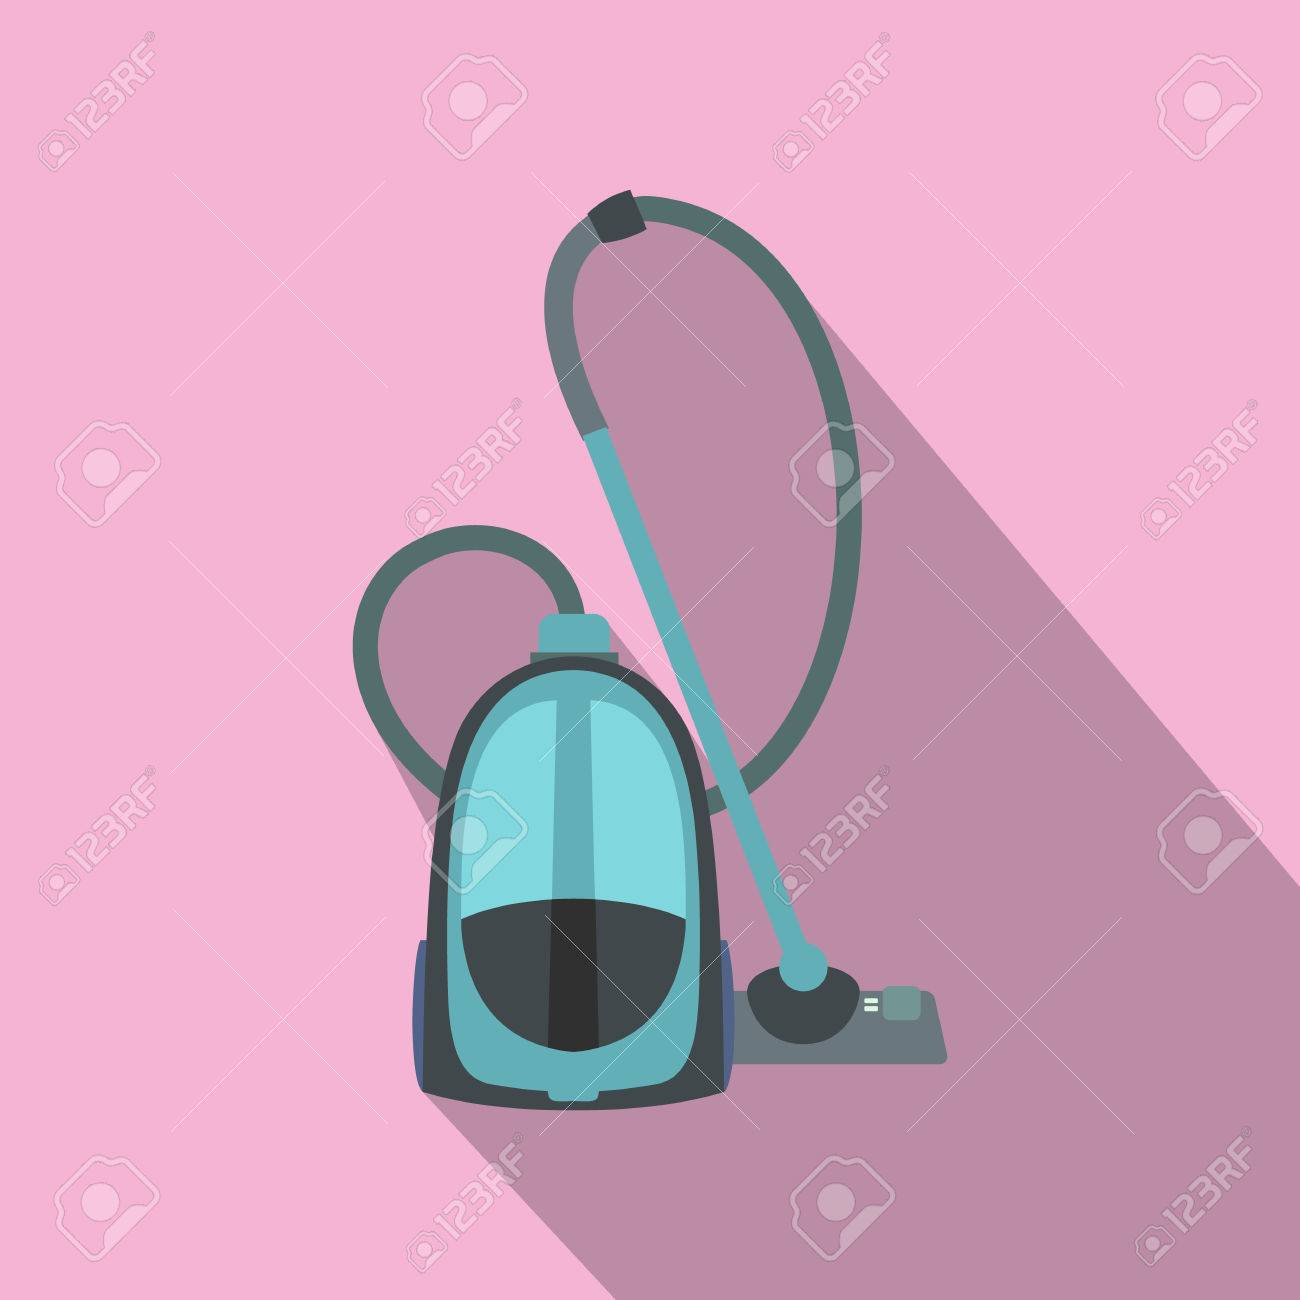 Blue Vacuum Cleaner Flat Icon On A Pink Background Stock Vector